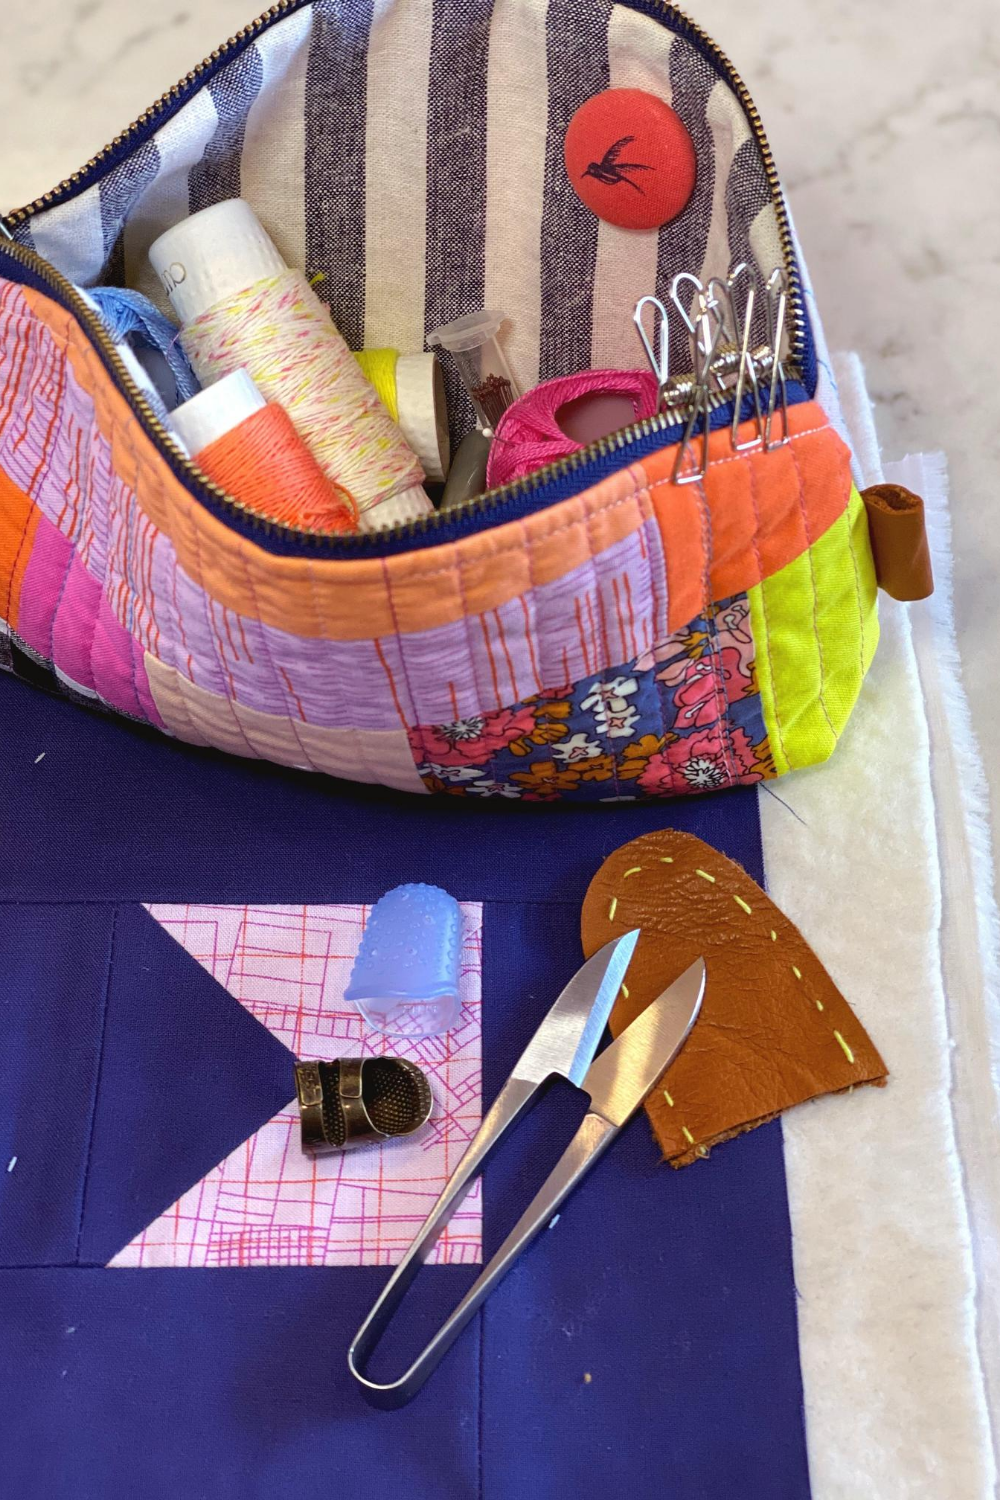 Flip's scrappy pink Petal Pouch zipped open to access her fav sewing notions for hang quilting | What's in Your Sewing Bag? Special guest: Flip & Co | Shannon Fraser Designs #handquilting